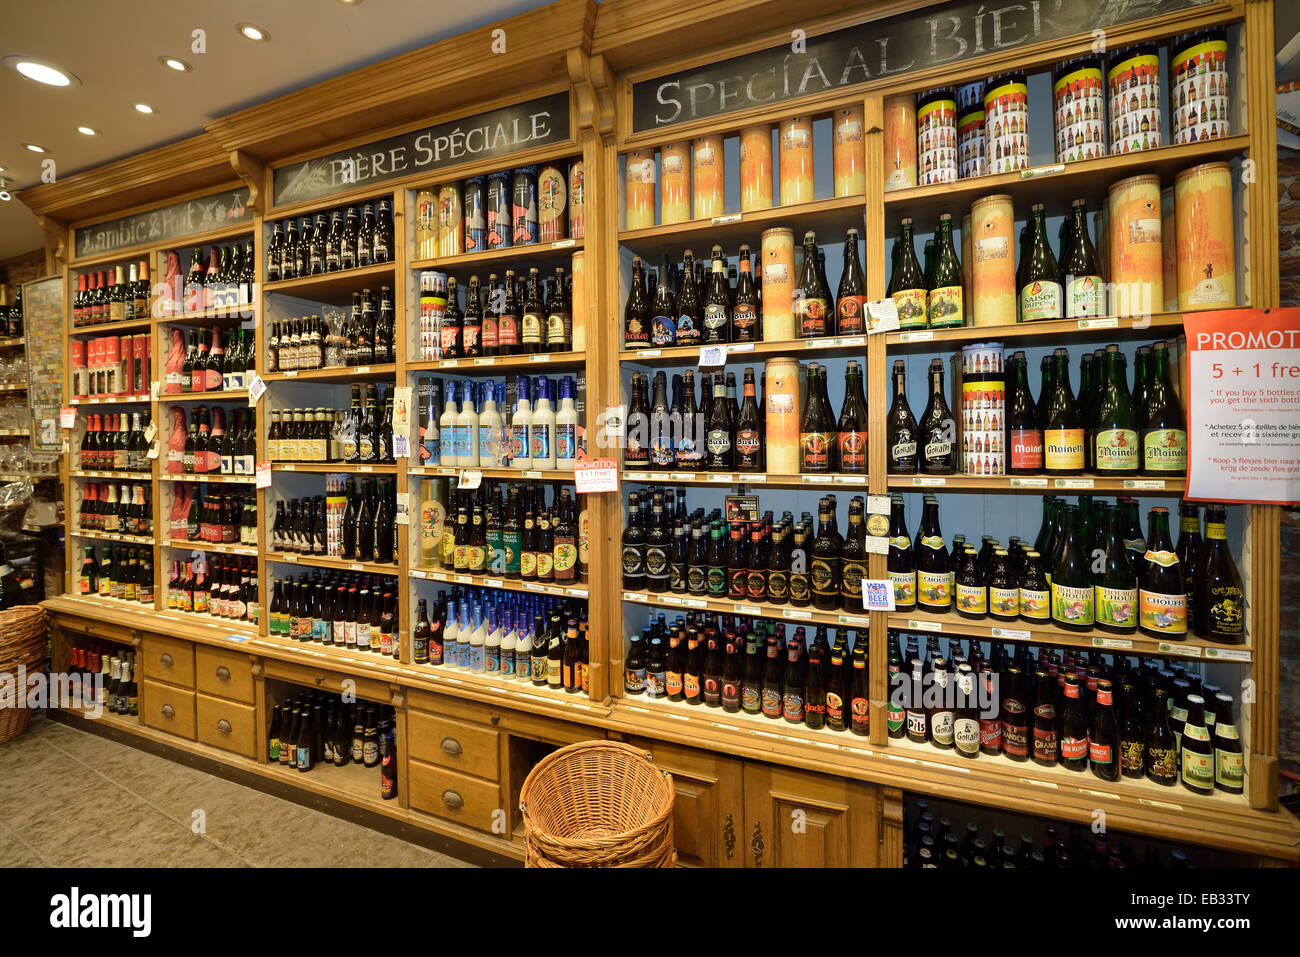 Shelf With Different Types Of Beer In A Liquor Store